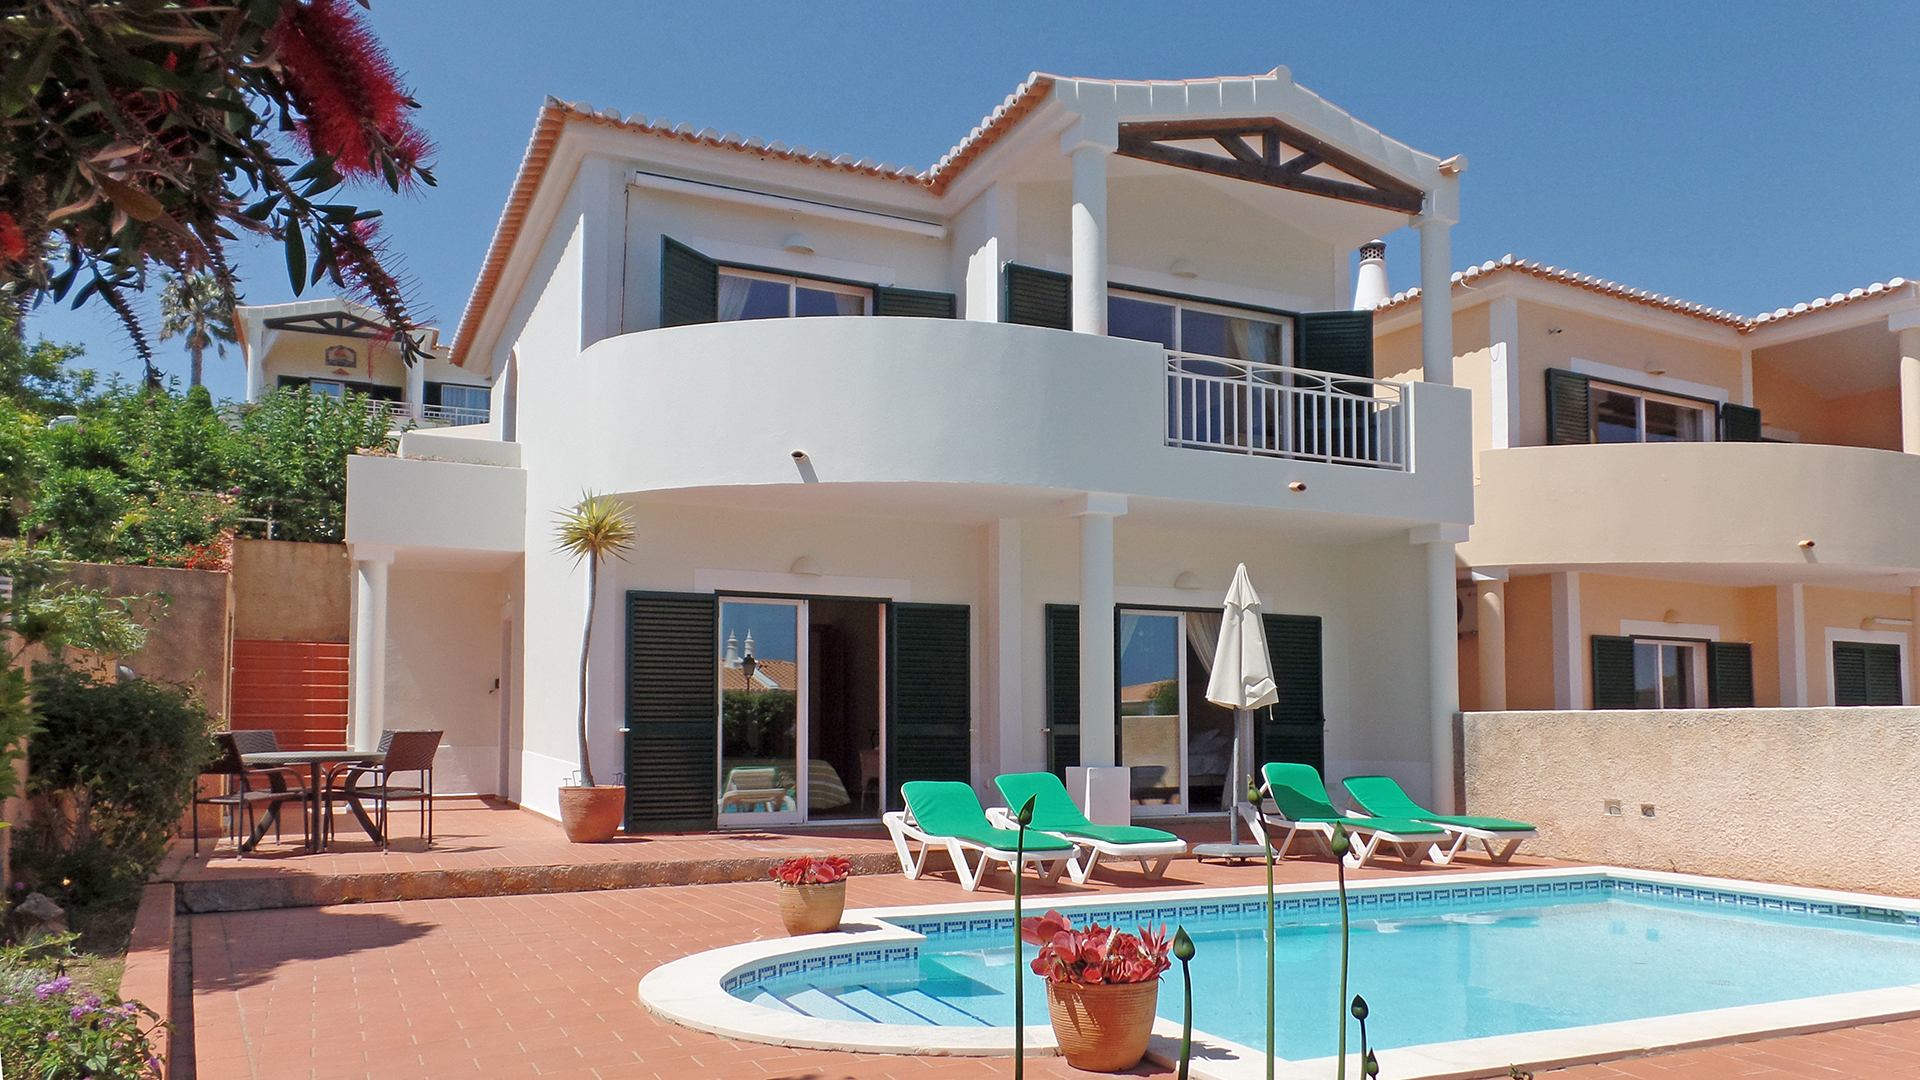 2 bedroom Villa with pool and sea view in Praia da Luz, West Algarve | LG1109 Two bedroom, two bathroom villa with pool in beautiful Praia da Luz with pool, mature well maintained gardens and stunning sea views. Situated in a tranquil location, with easy access to the beach and local amenities